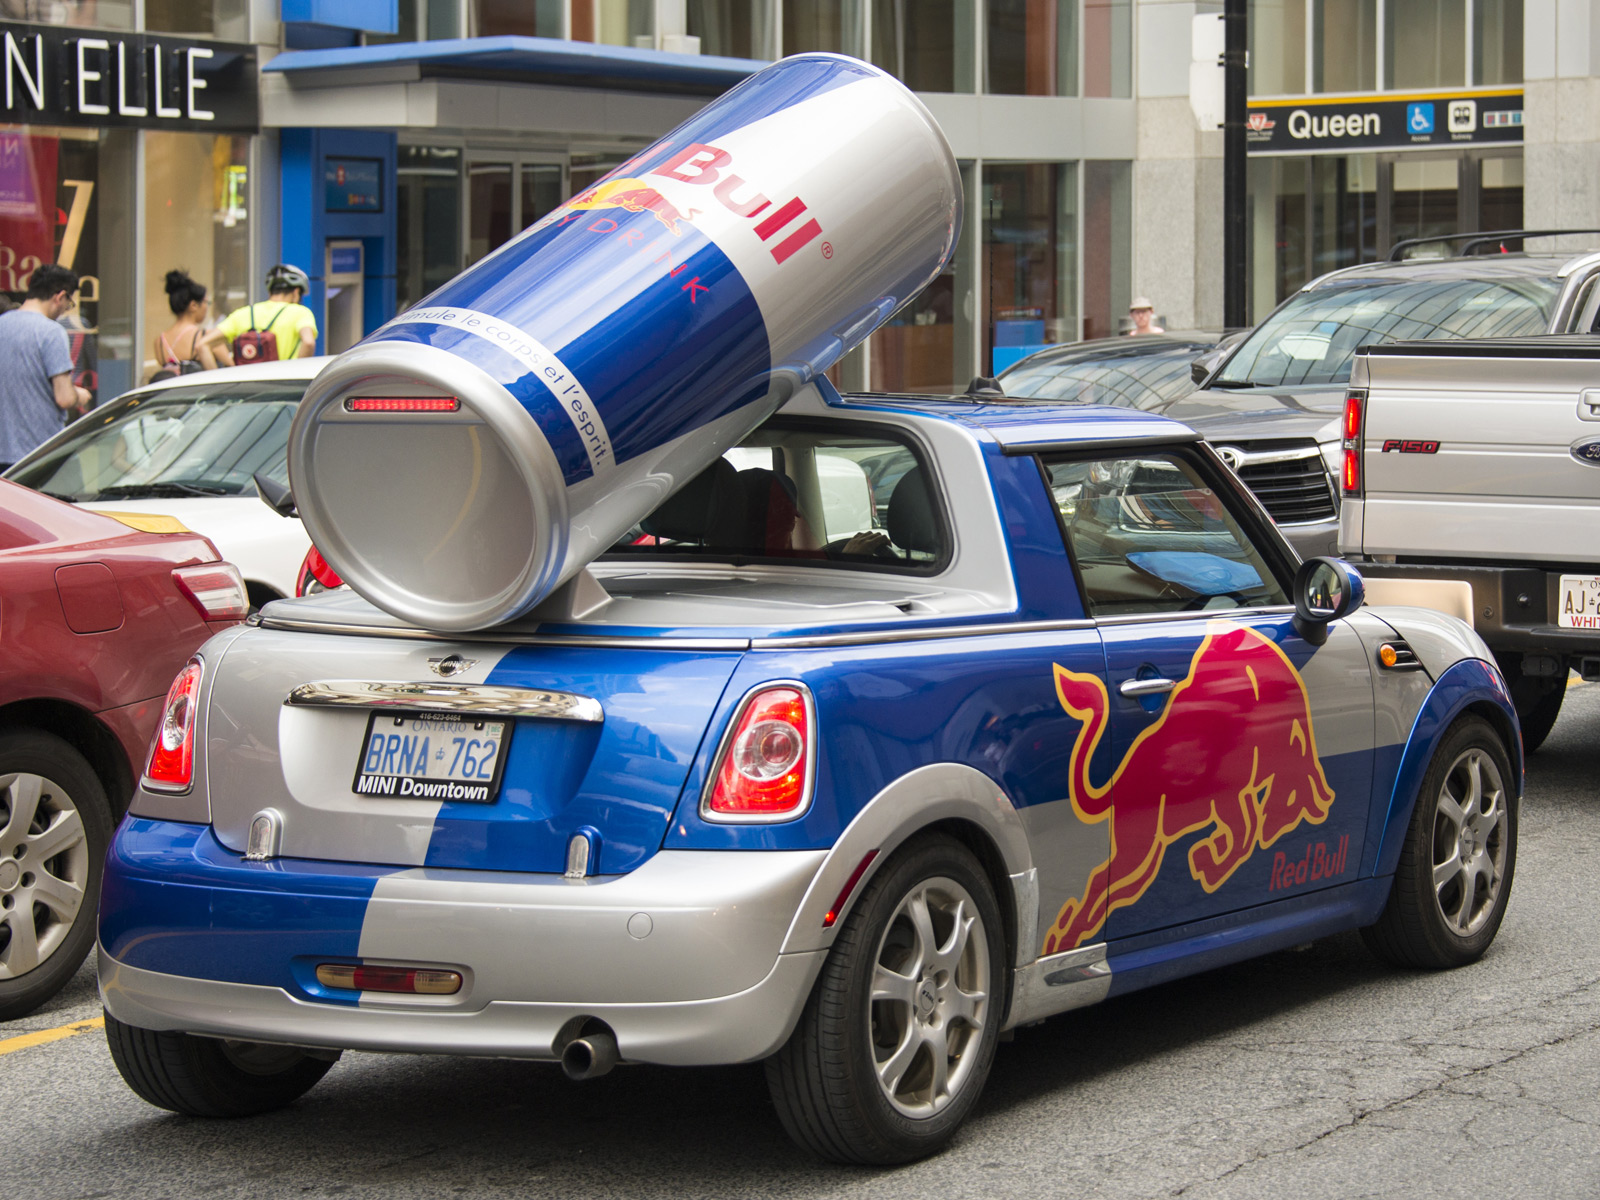 Drinking Red Bull and Vodka Makes You Aggressive, Says Most Self-Evident Scientific Study Ever